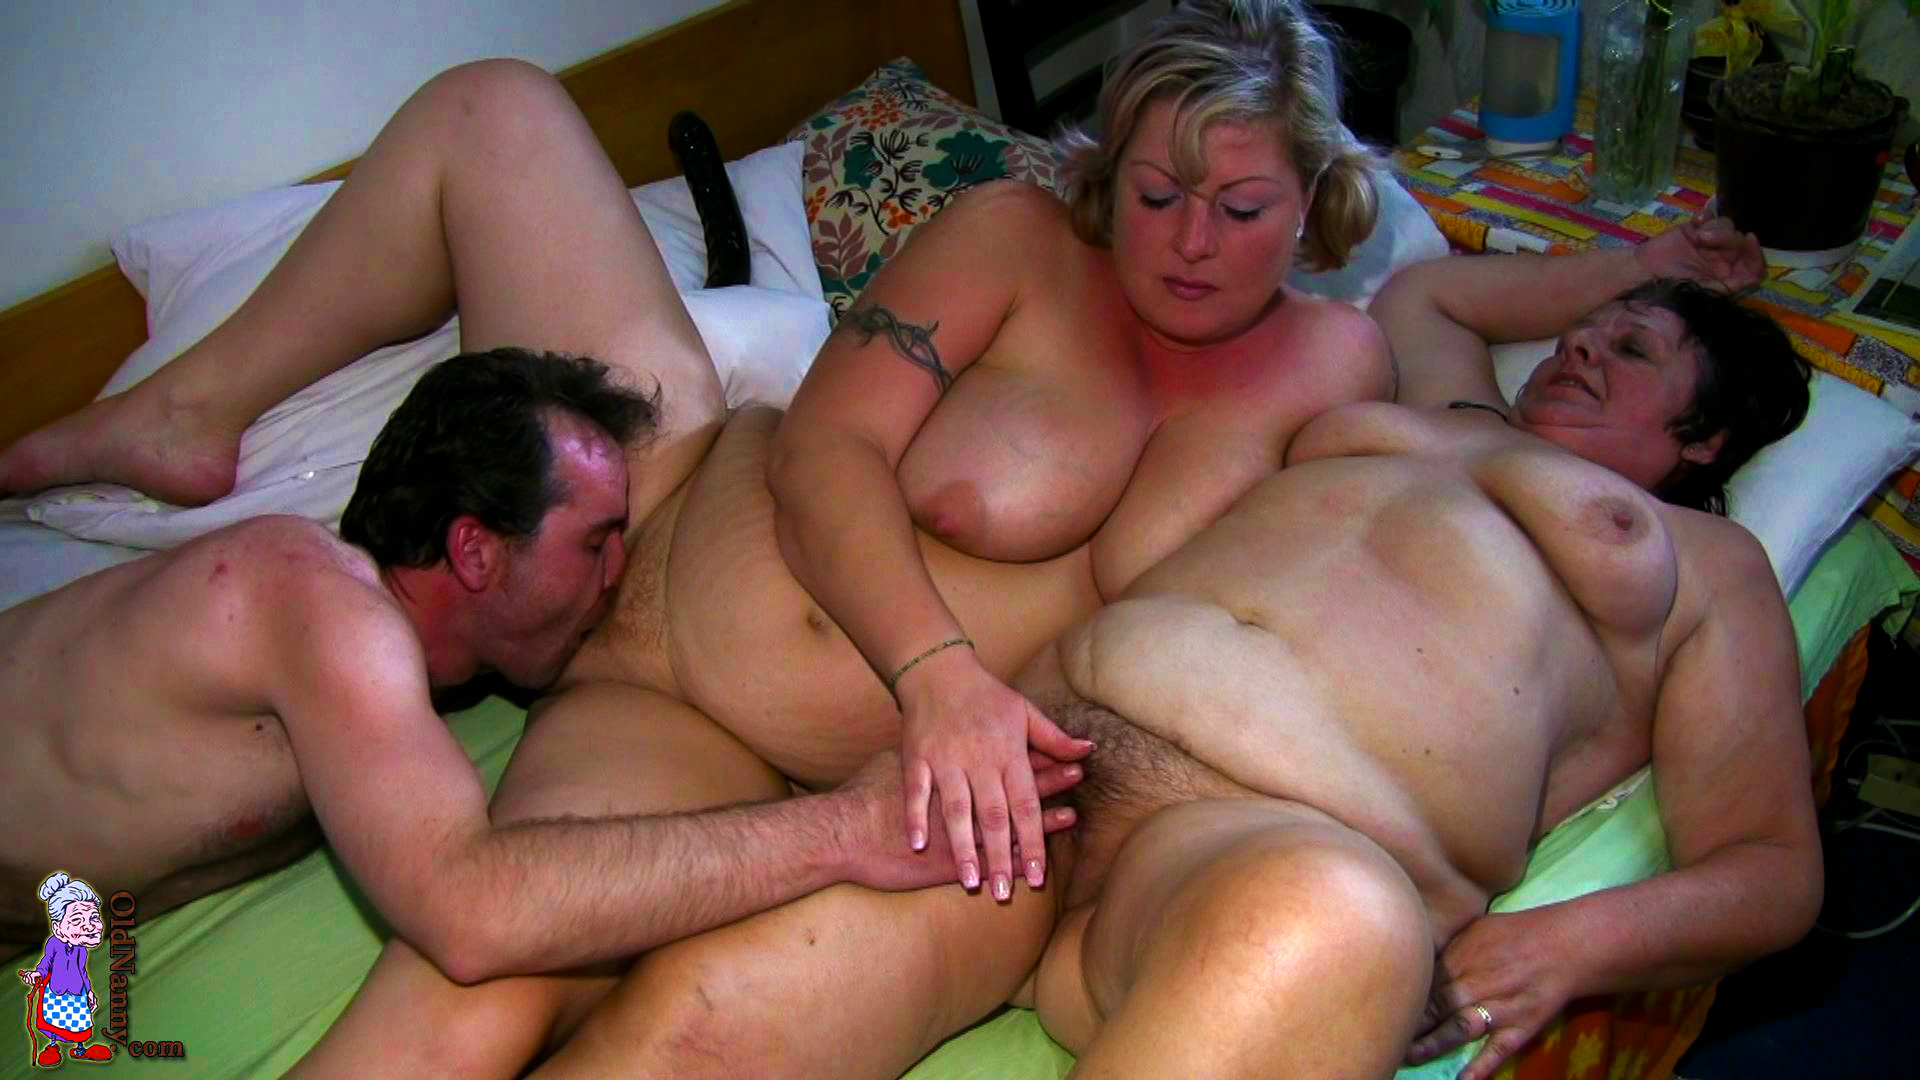 Giving handjob while he is asleep